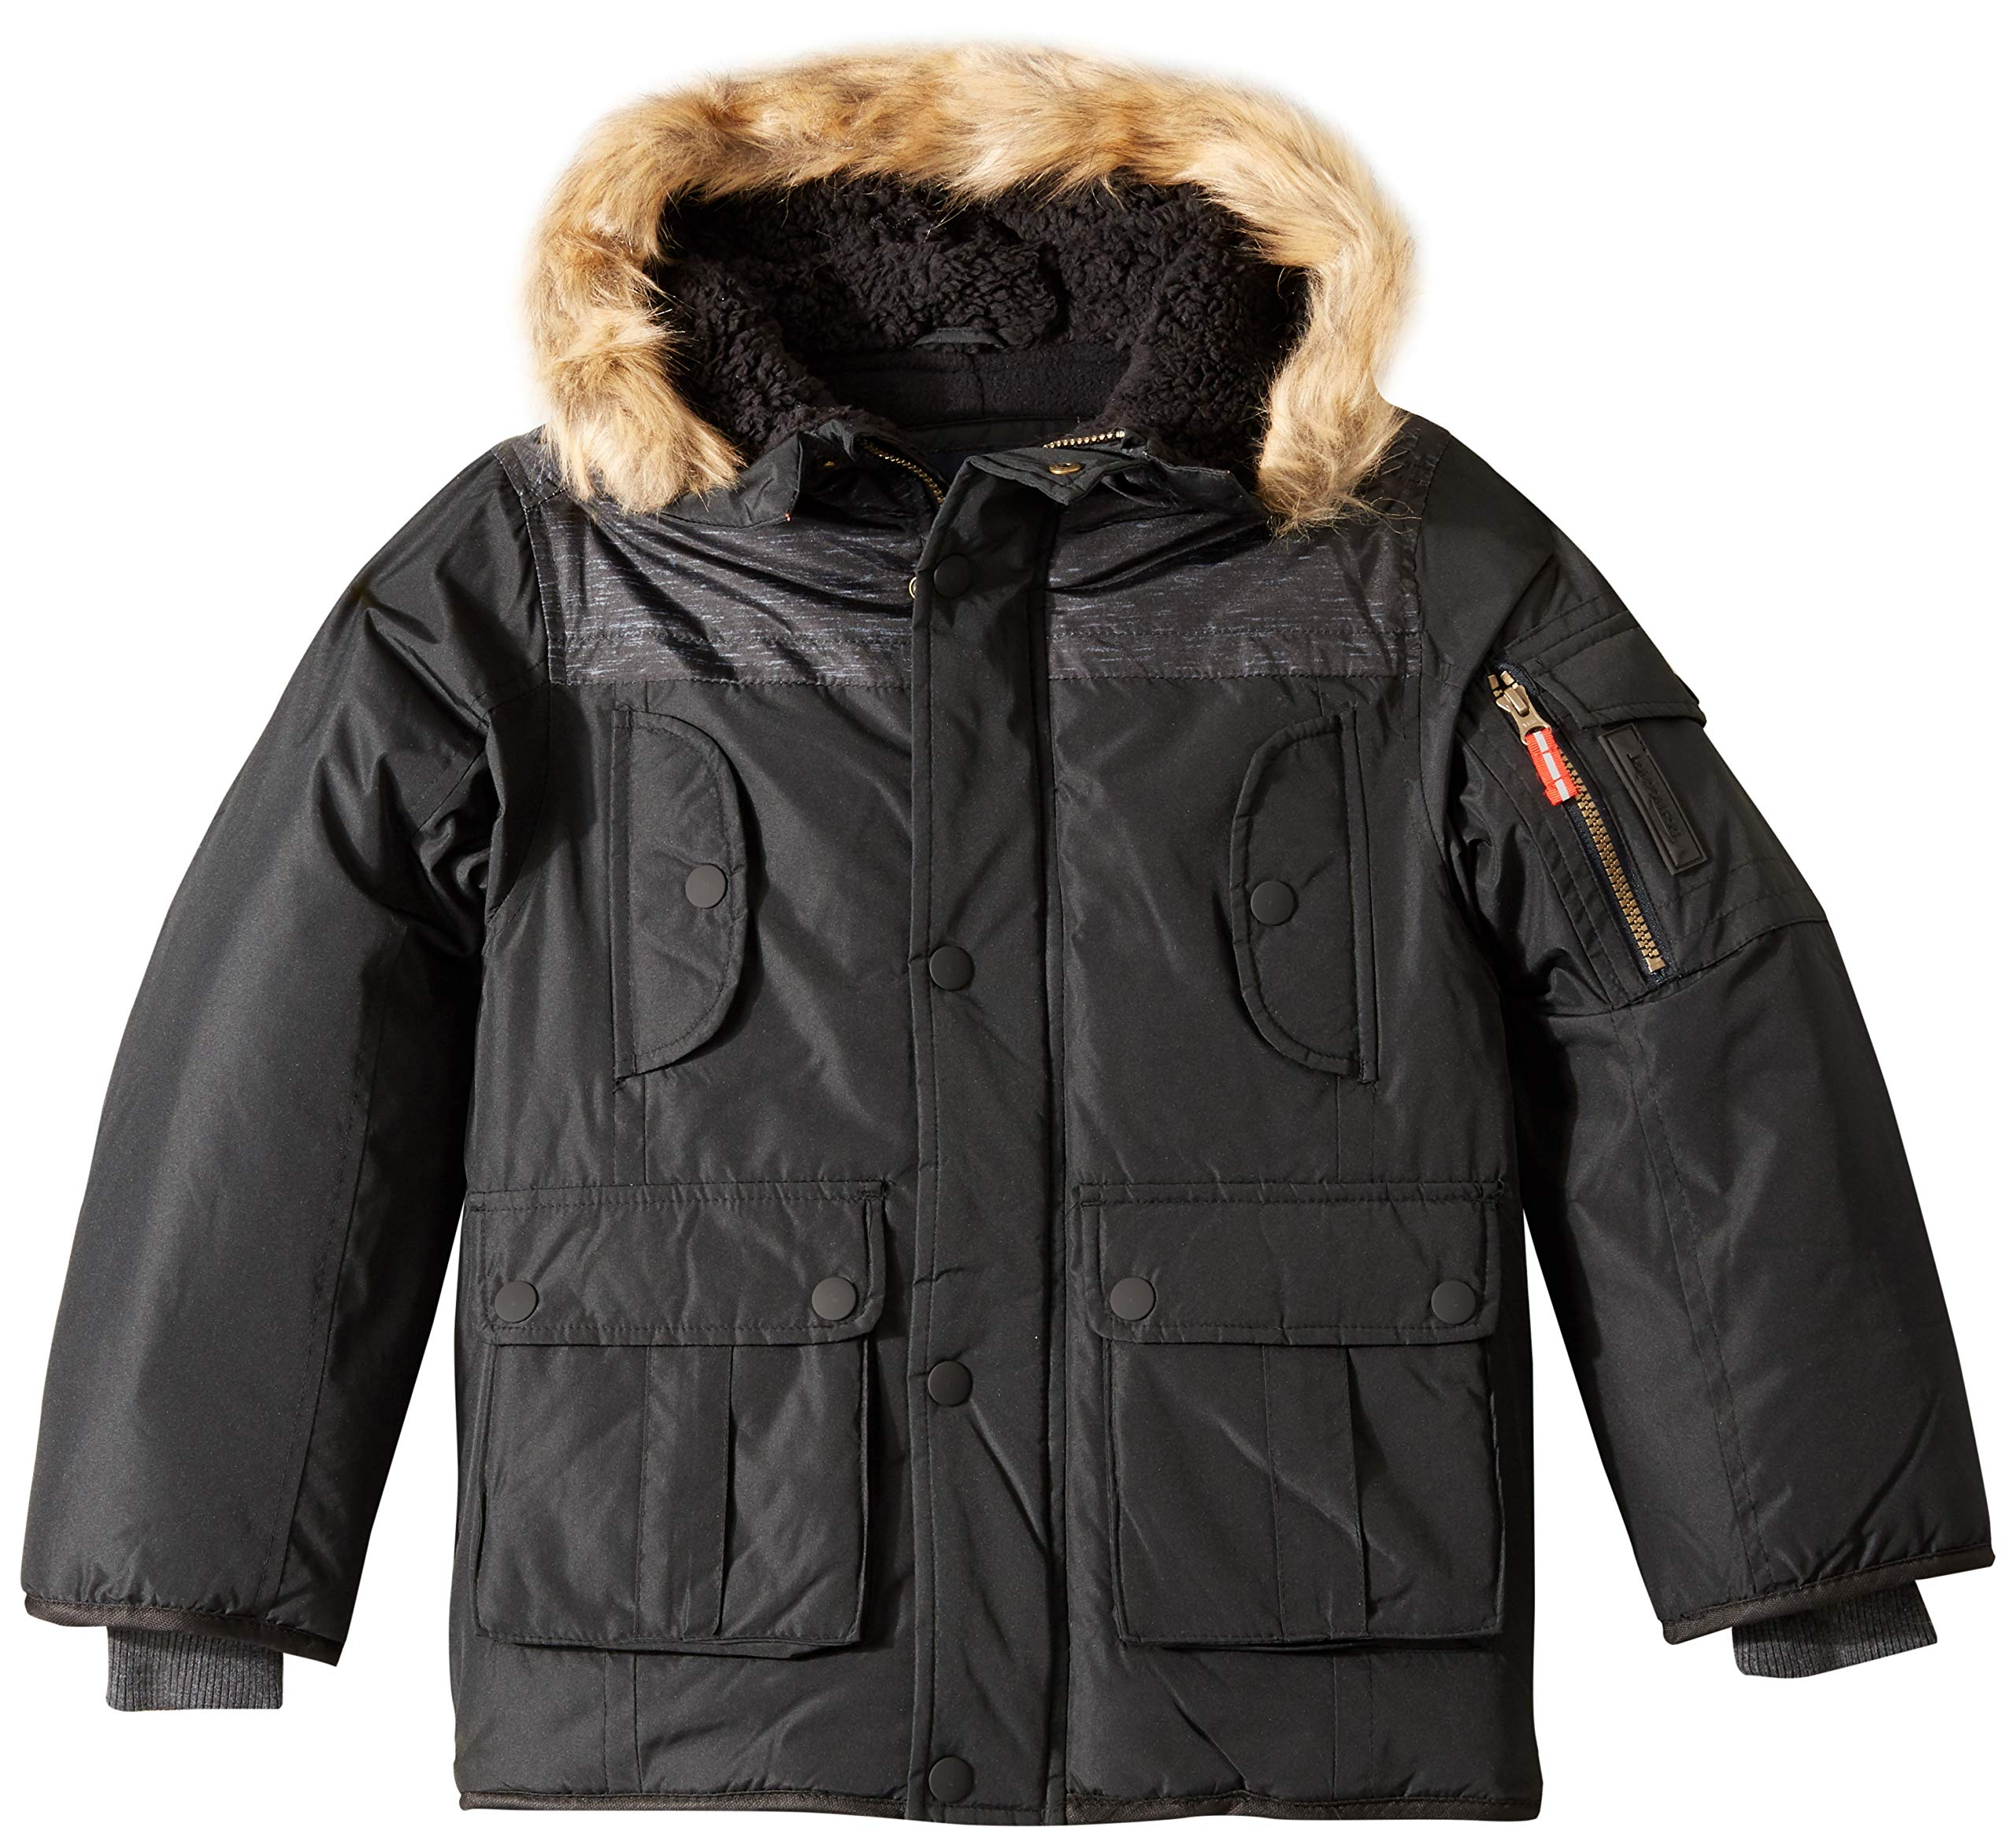 London Fog Boys' Big Warm Winter Coat Parka with Cozy Trimmed Hood, Real Black, 8